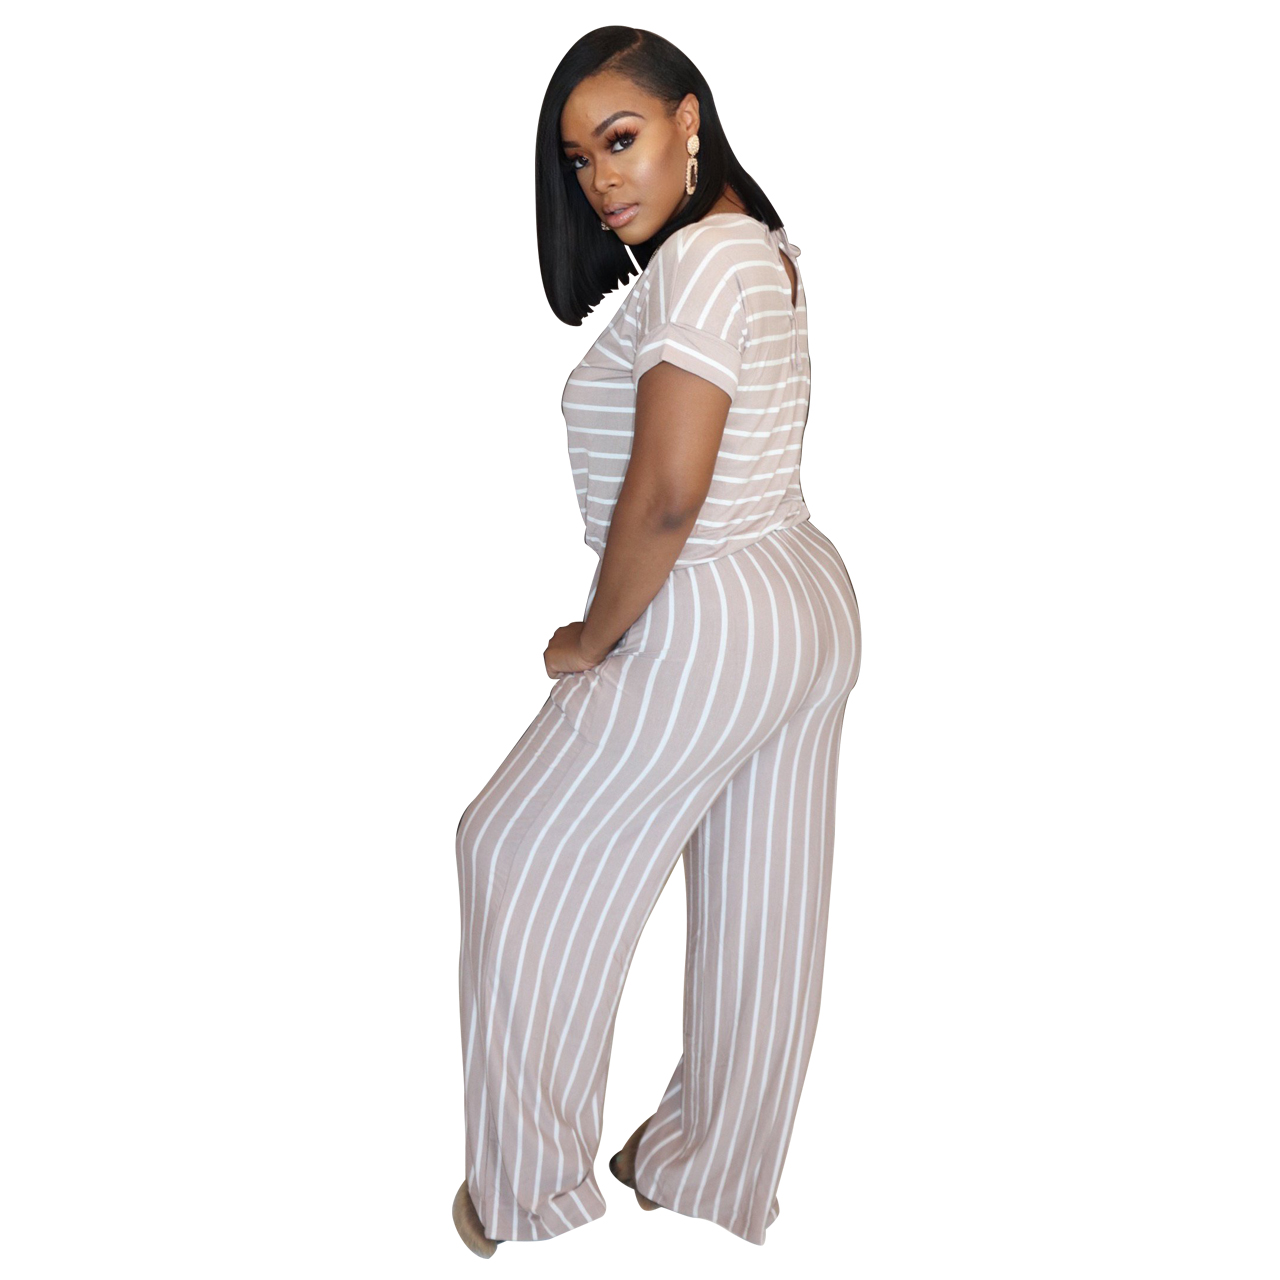 He8d4c06cc1334170b3cb981f7dc2c637E - Fashion Women Stripes Jumpsuits Summer New Arrival Short Sleeves Crew Neck Women Casual Rompers Loose Daily Wear Outfits